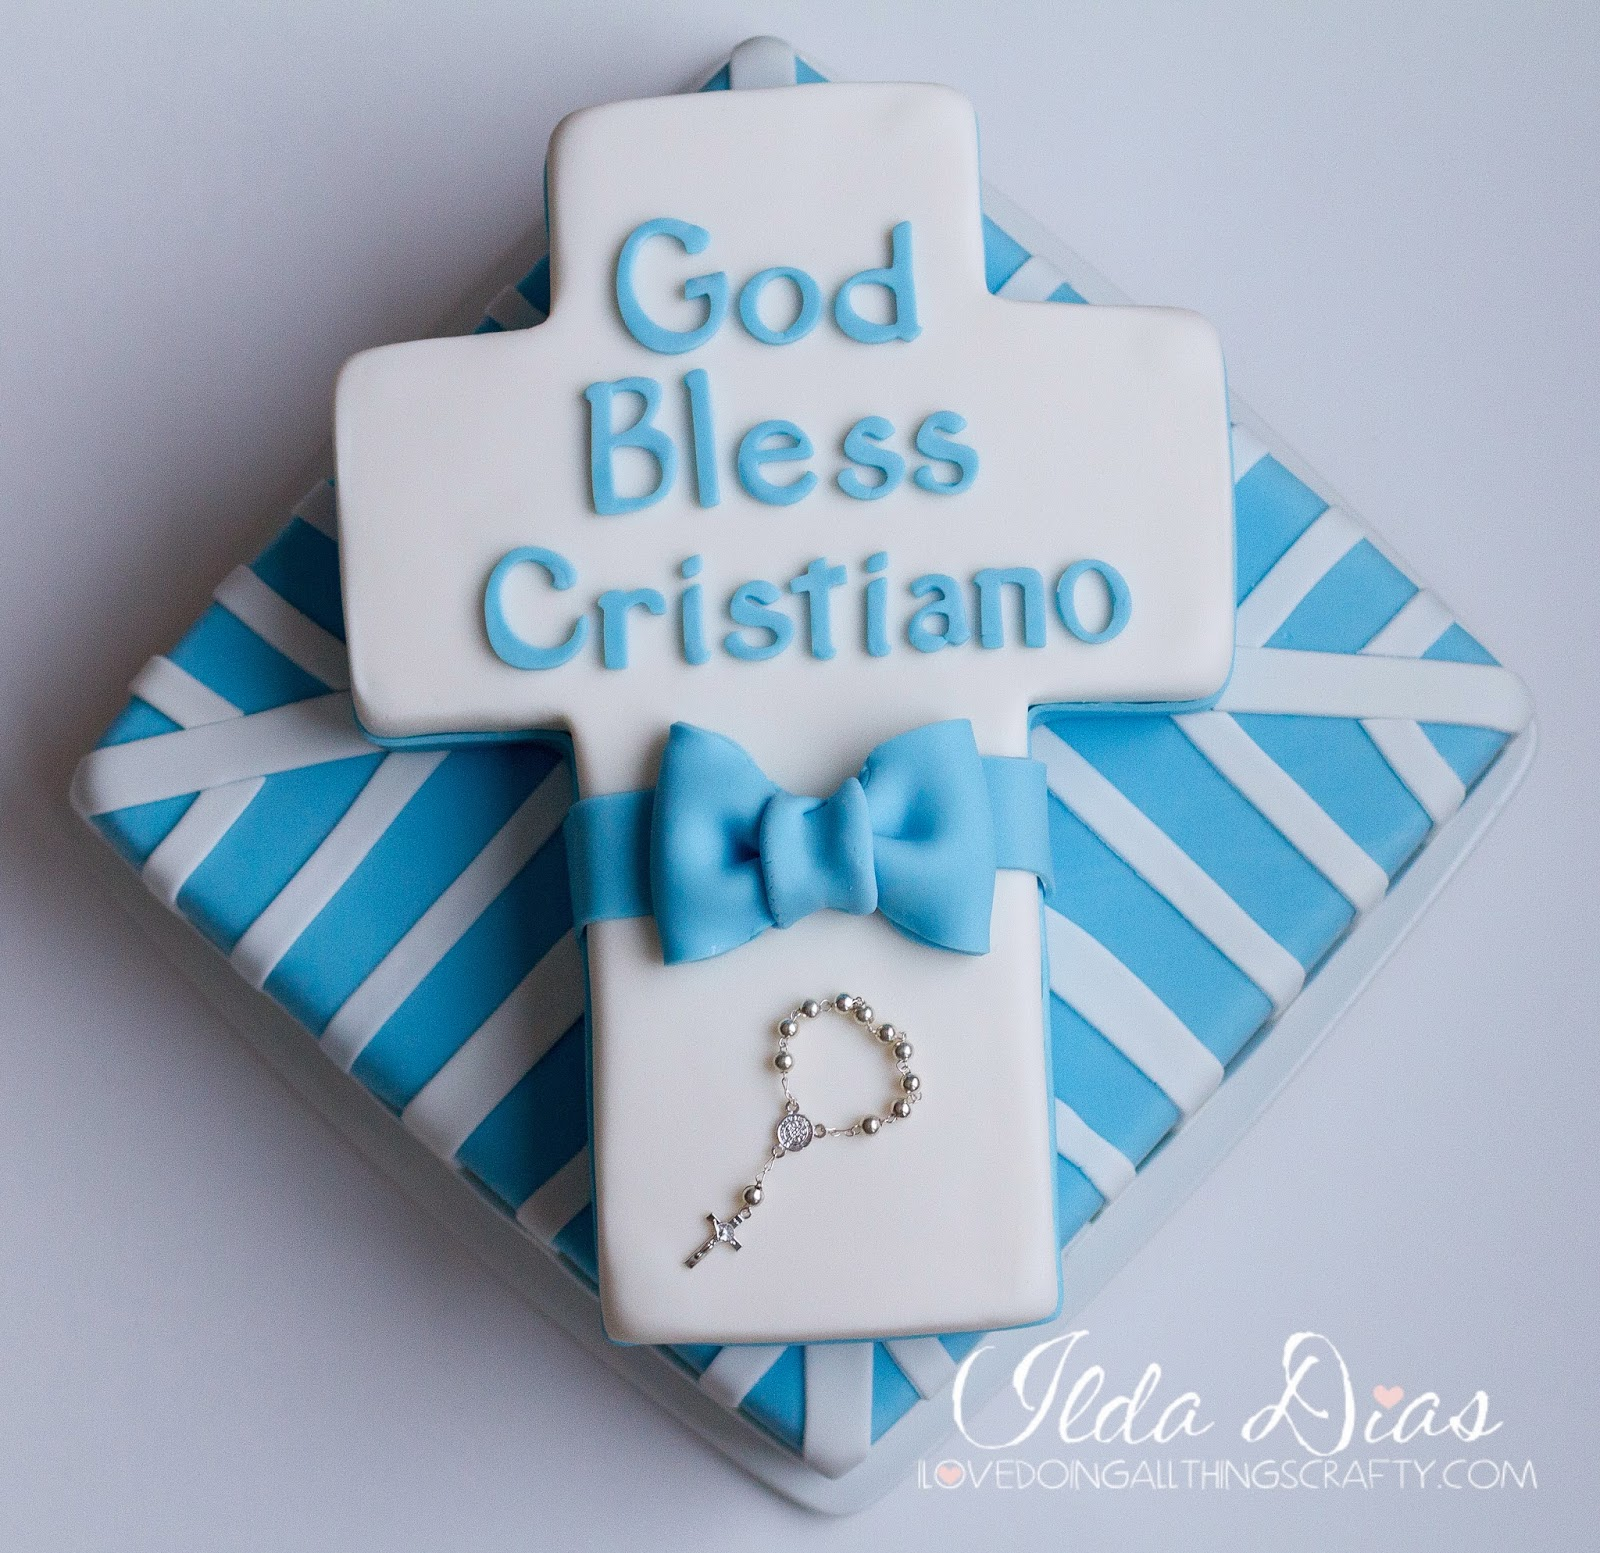 Download I Love Doing All Things Crafty: Cristiano's Baptism Cake